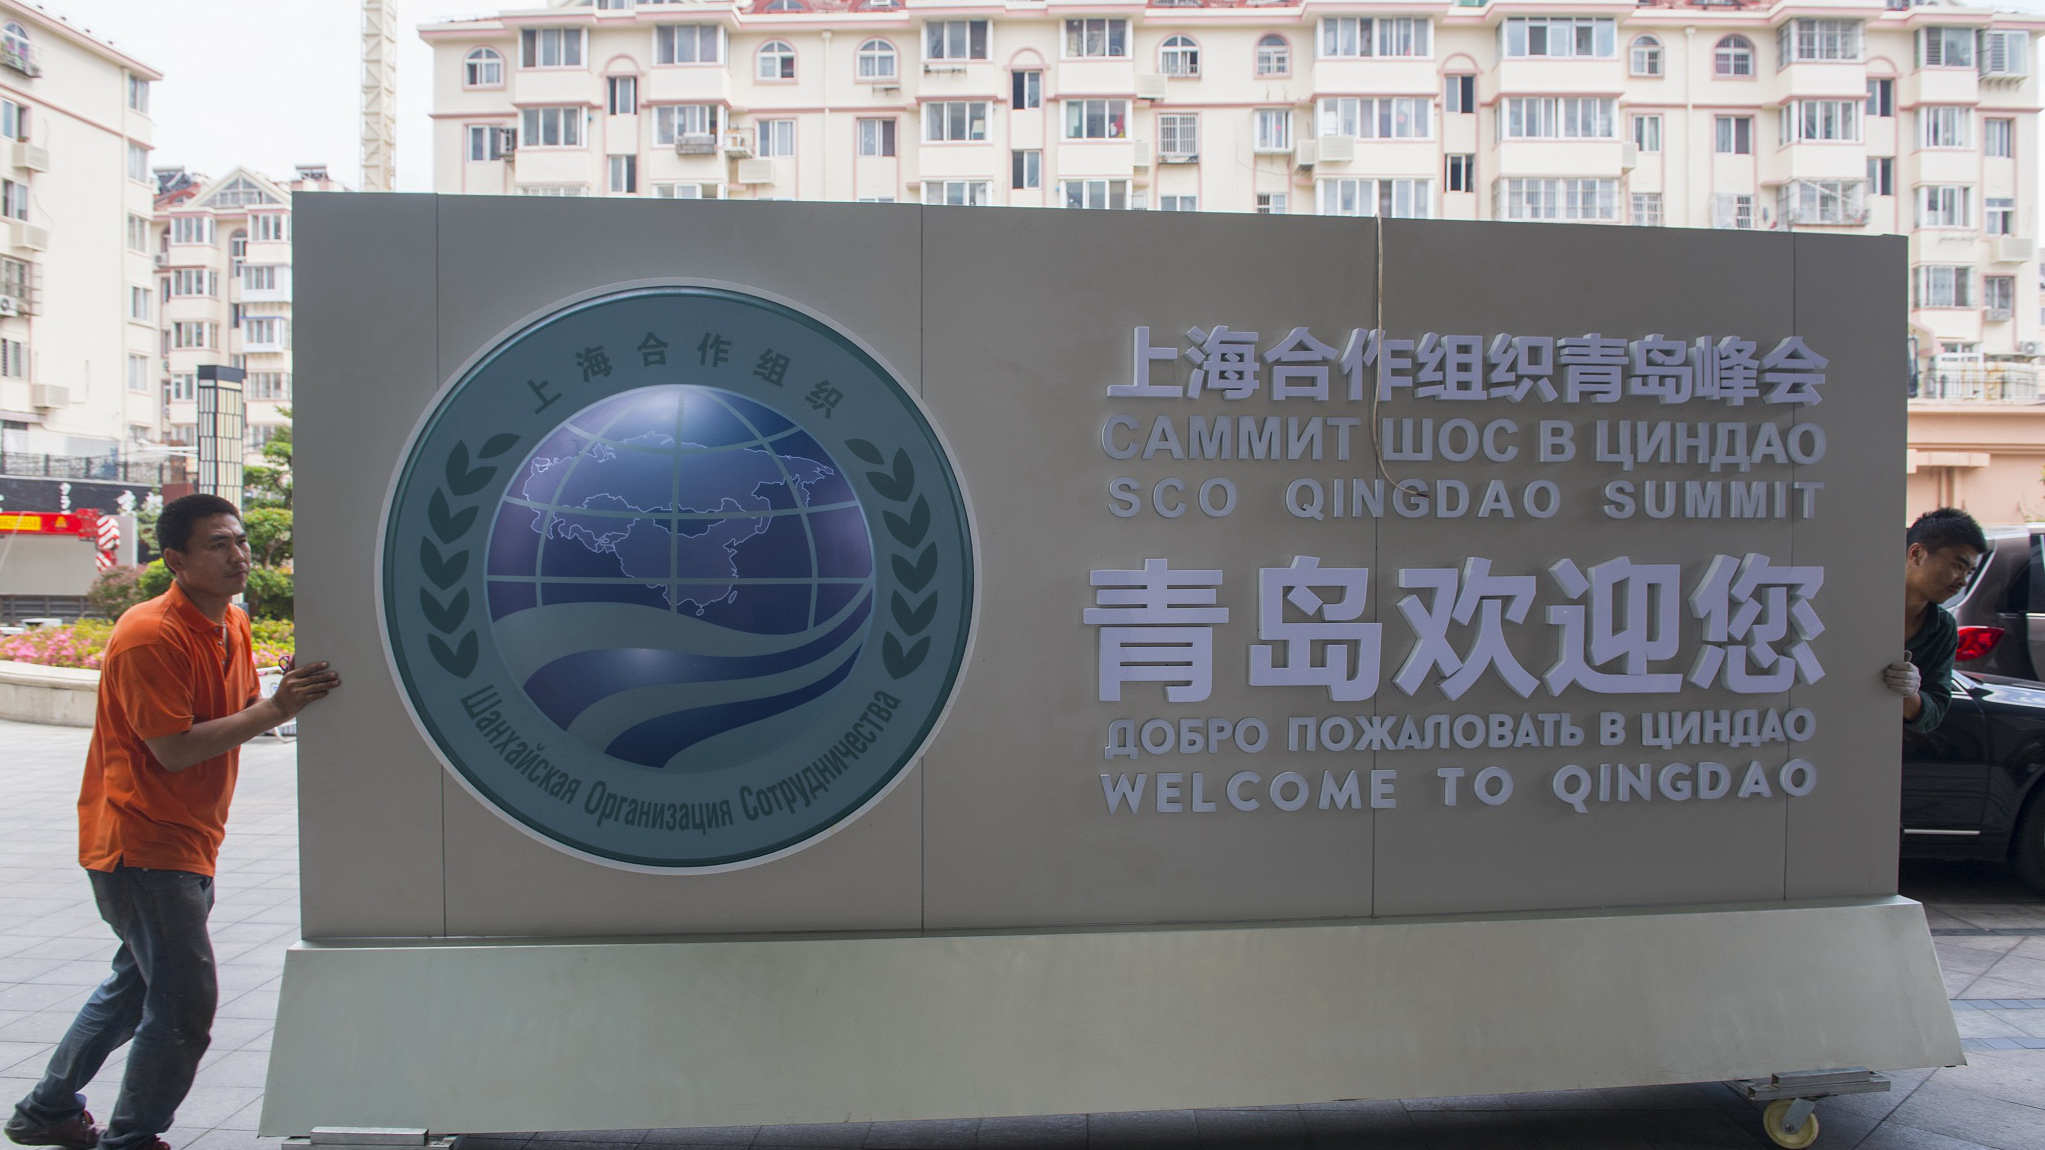 What can we expect from the SCO summit in Qingdao?